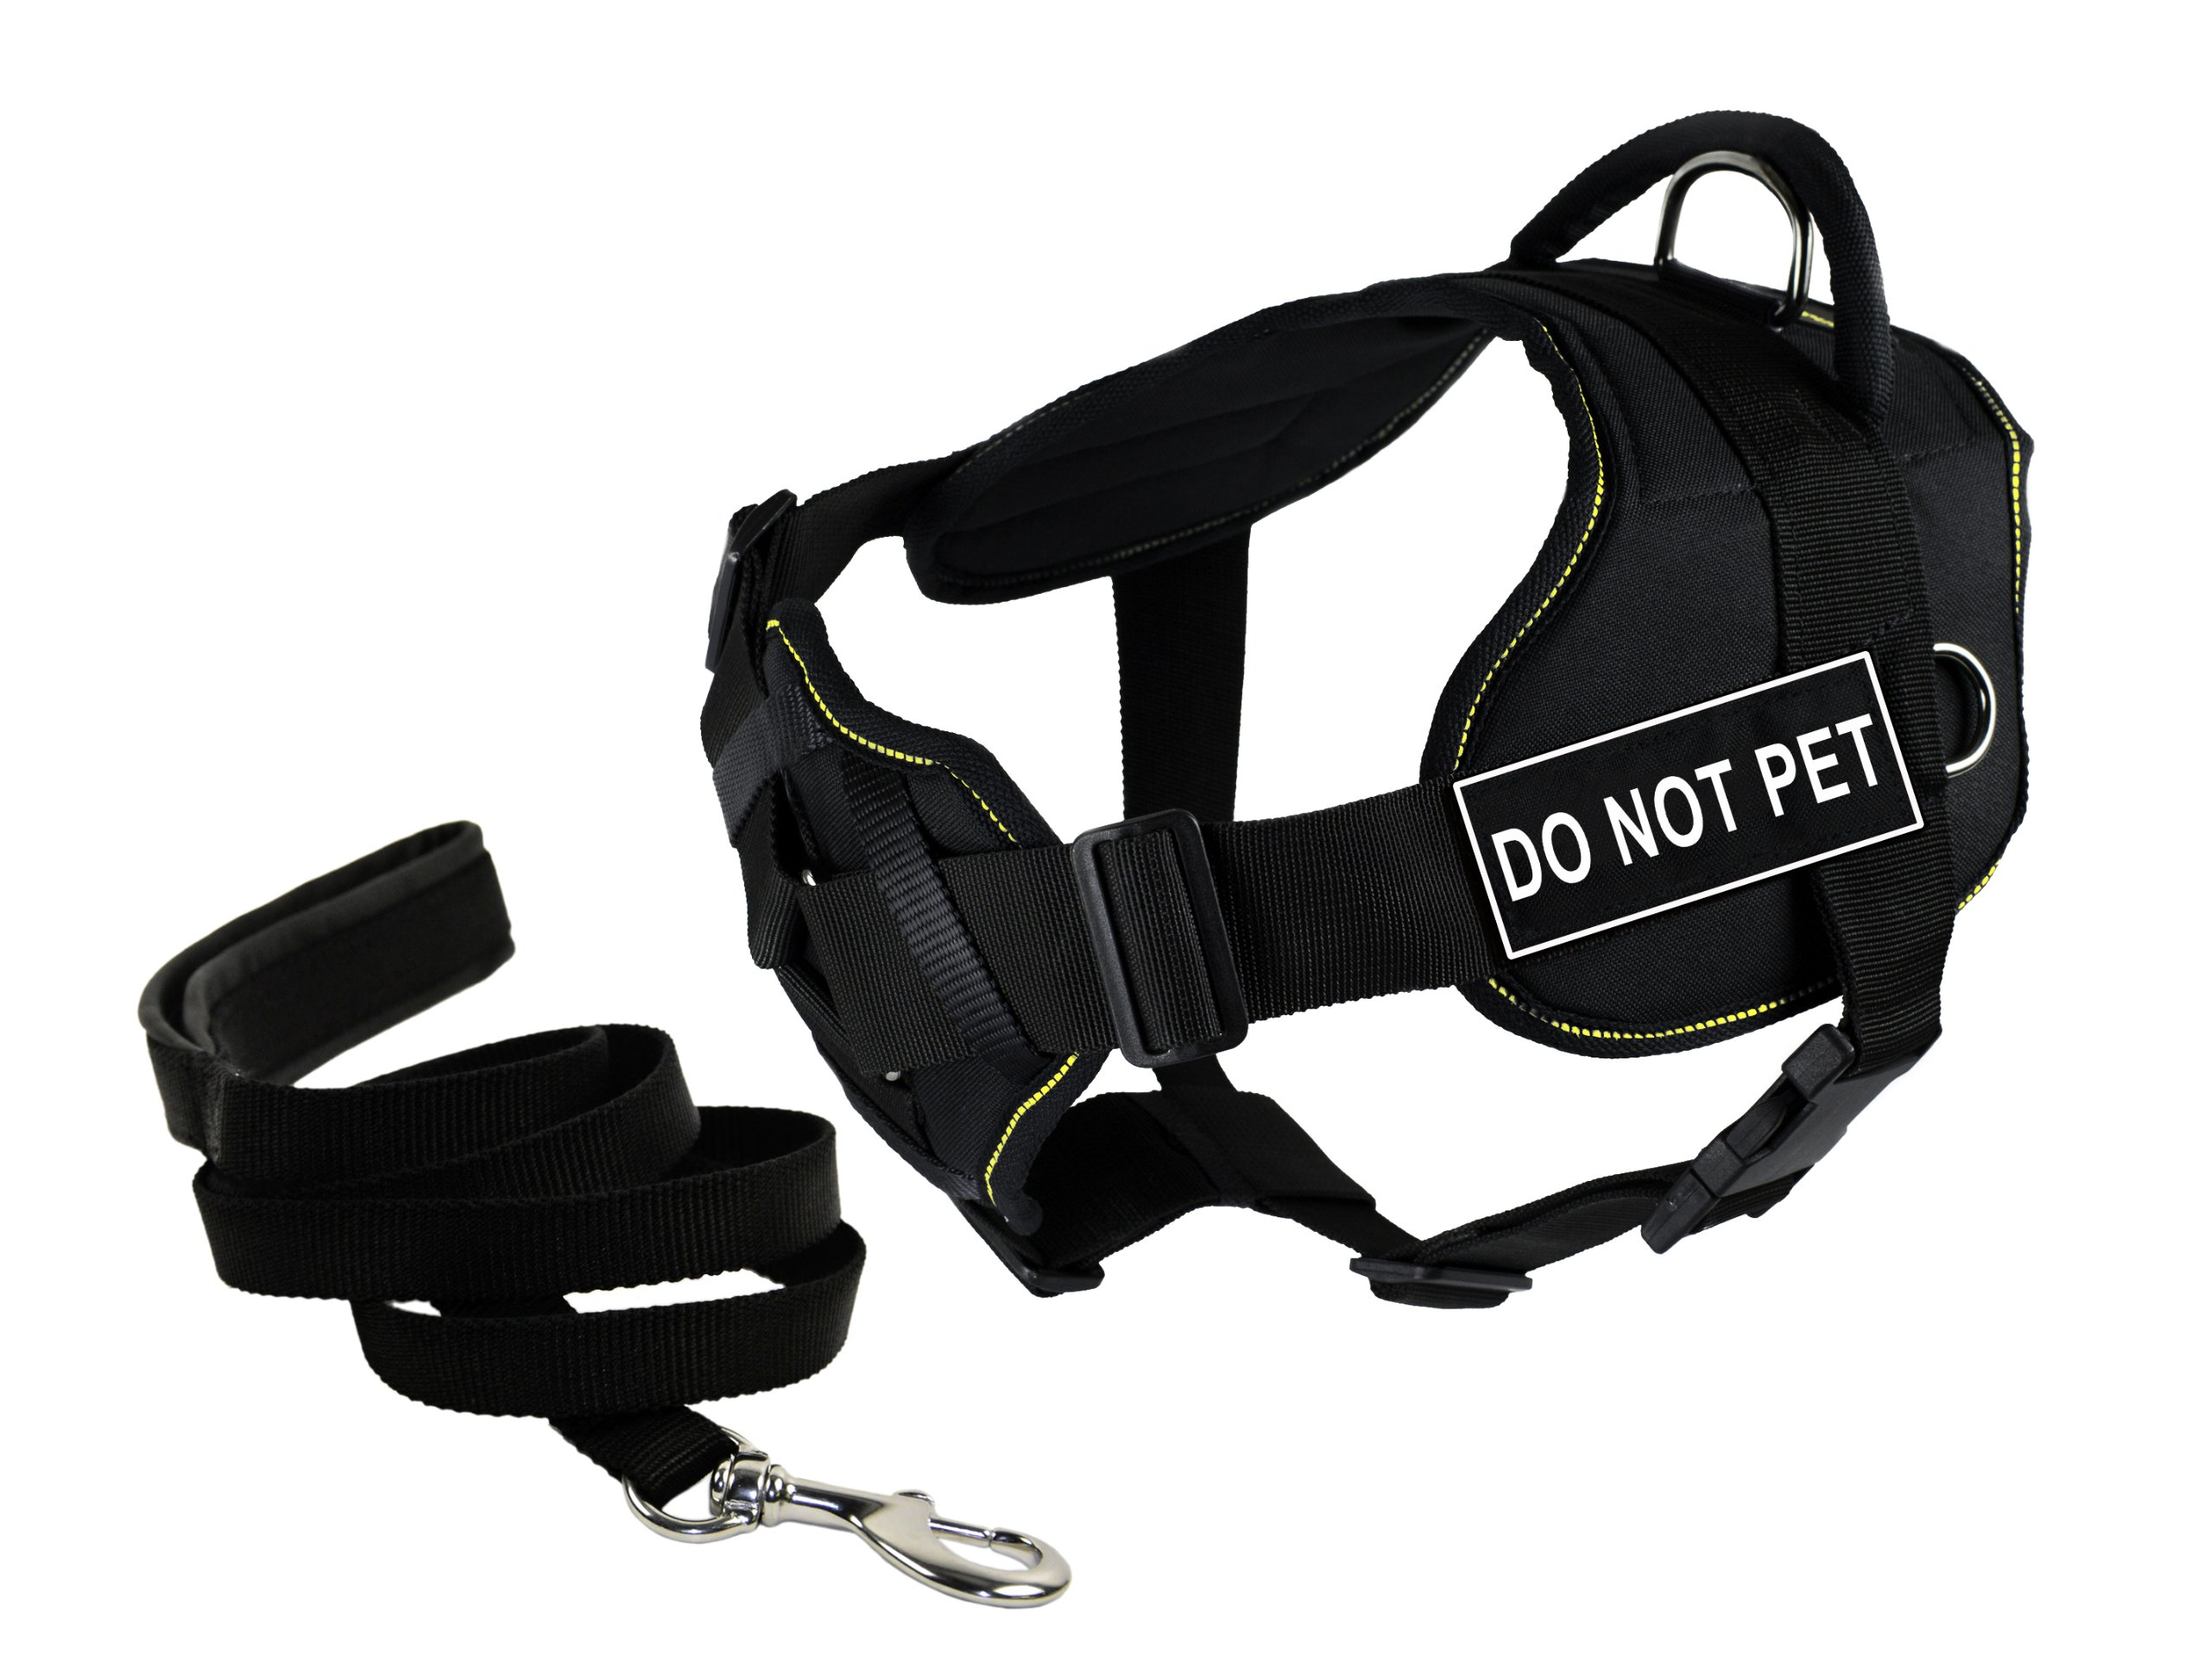 Dean & Tyler's DT Fun Chest Support ''DO NOT PET'' Harness, Large, with 6 ft Padded Puppy Leash.